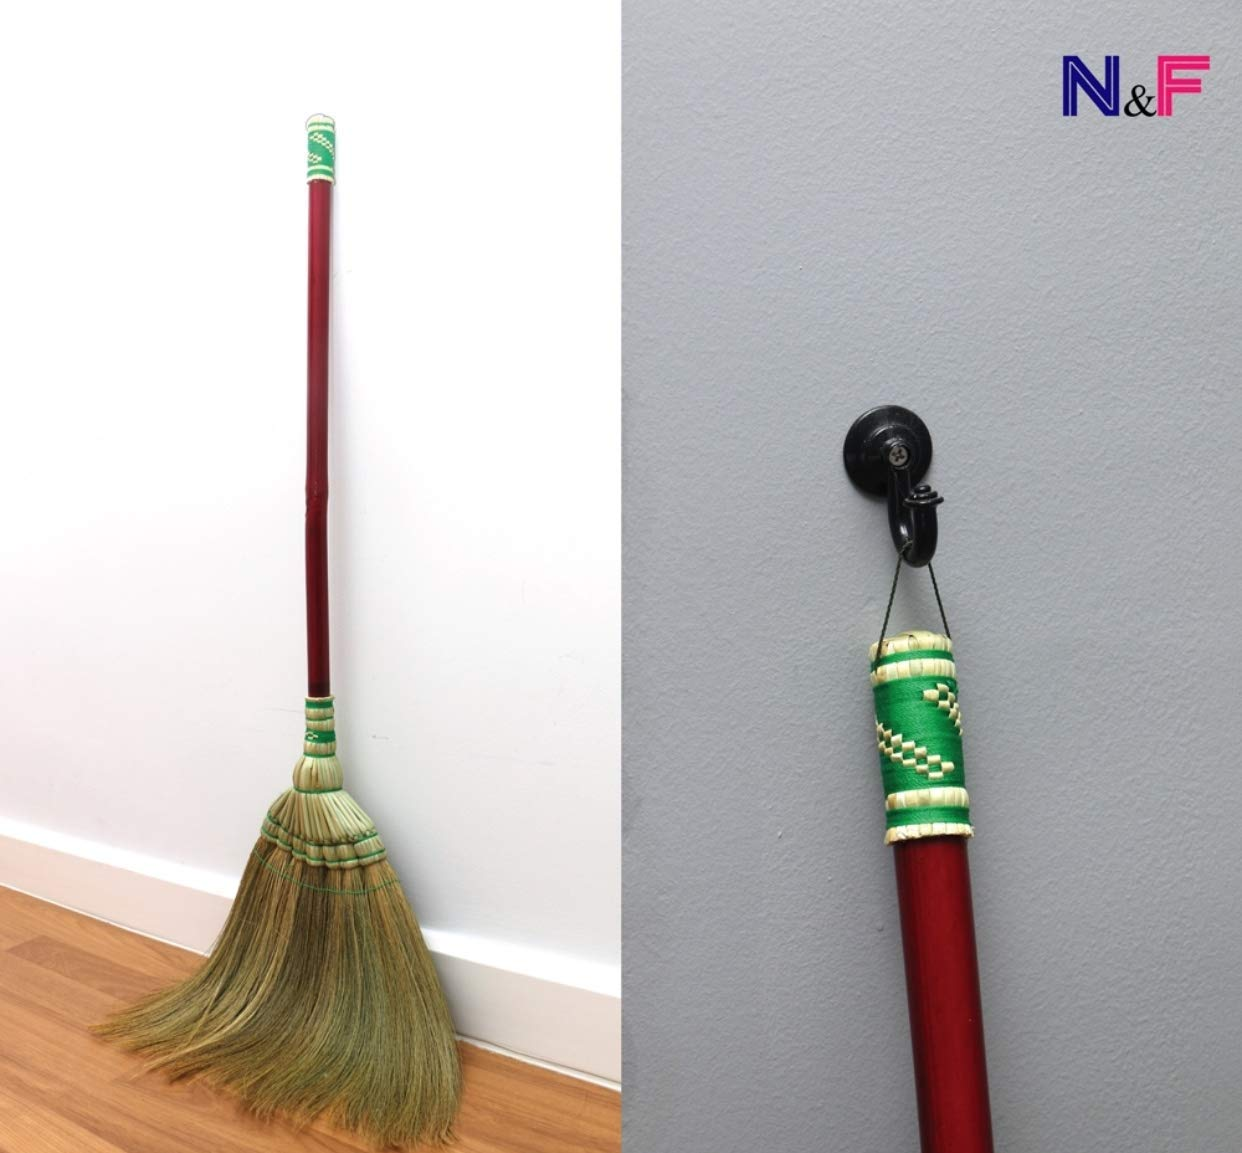 Natural Grass Broom Vintage Dustpan Retro Made in Thailand,Handmade Broom, Housewarming Gift, Witch Broom, Thai Broom, Broomstick Bamboo Stick Handle, Kong Grass Broom, Thick Broomstick, Durable Broom